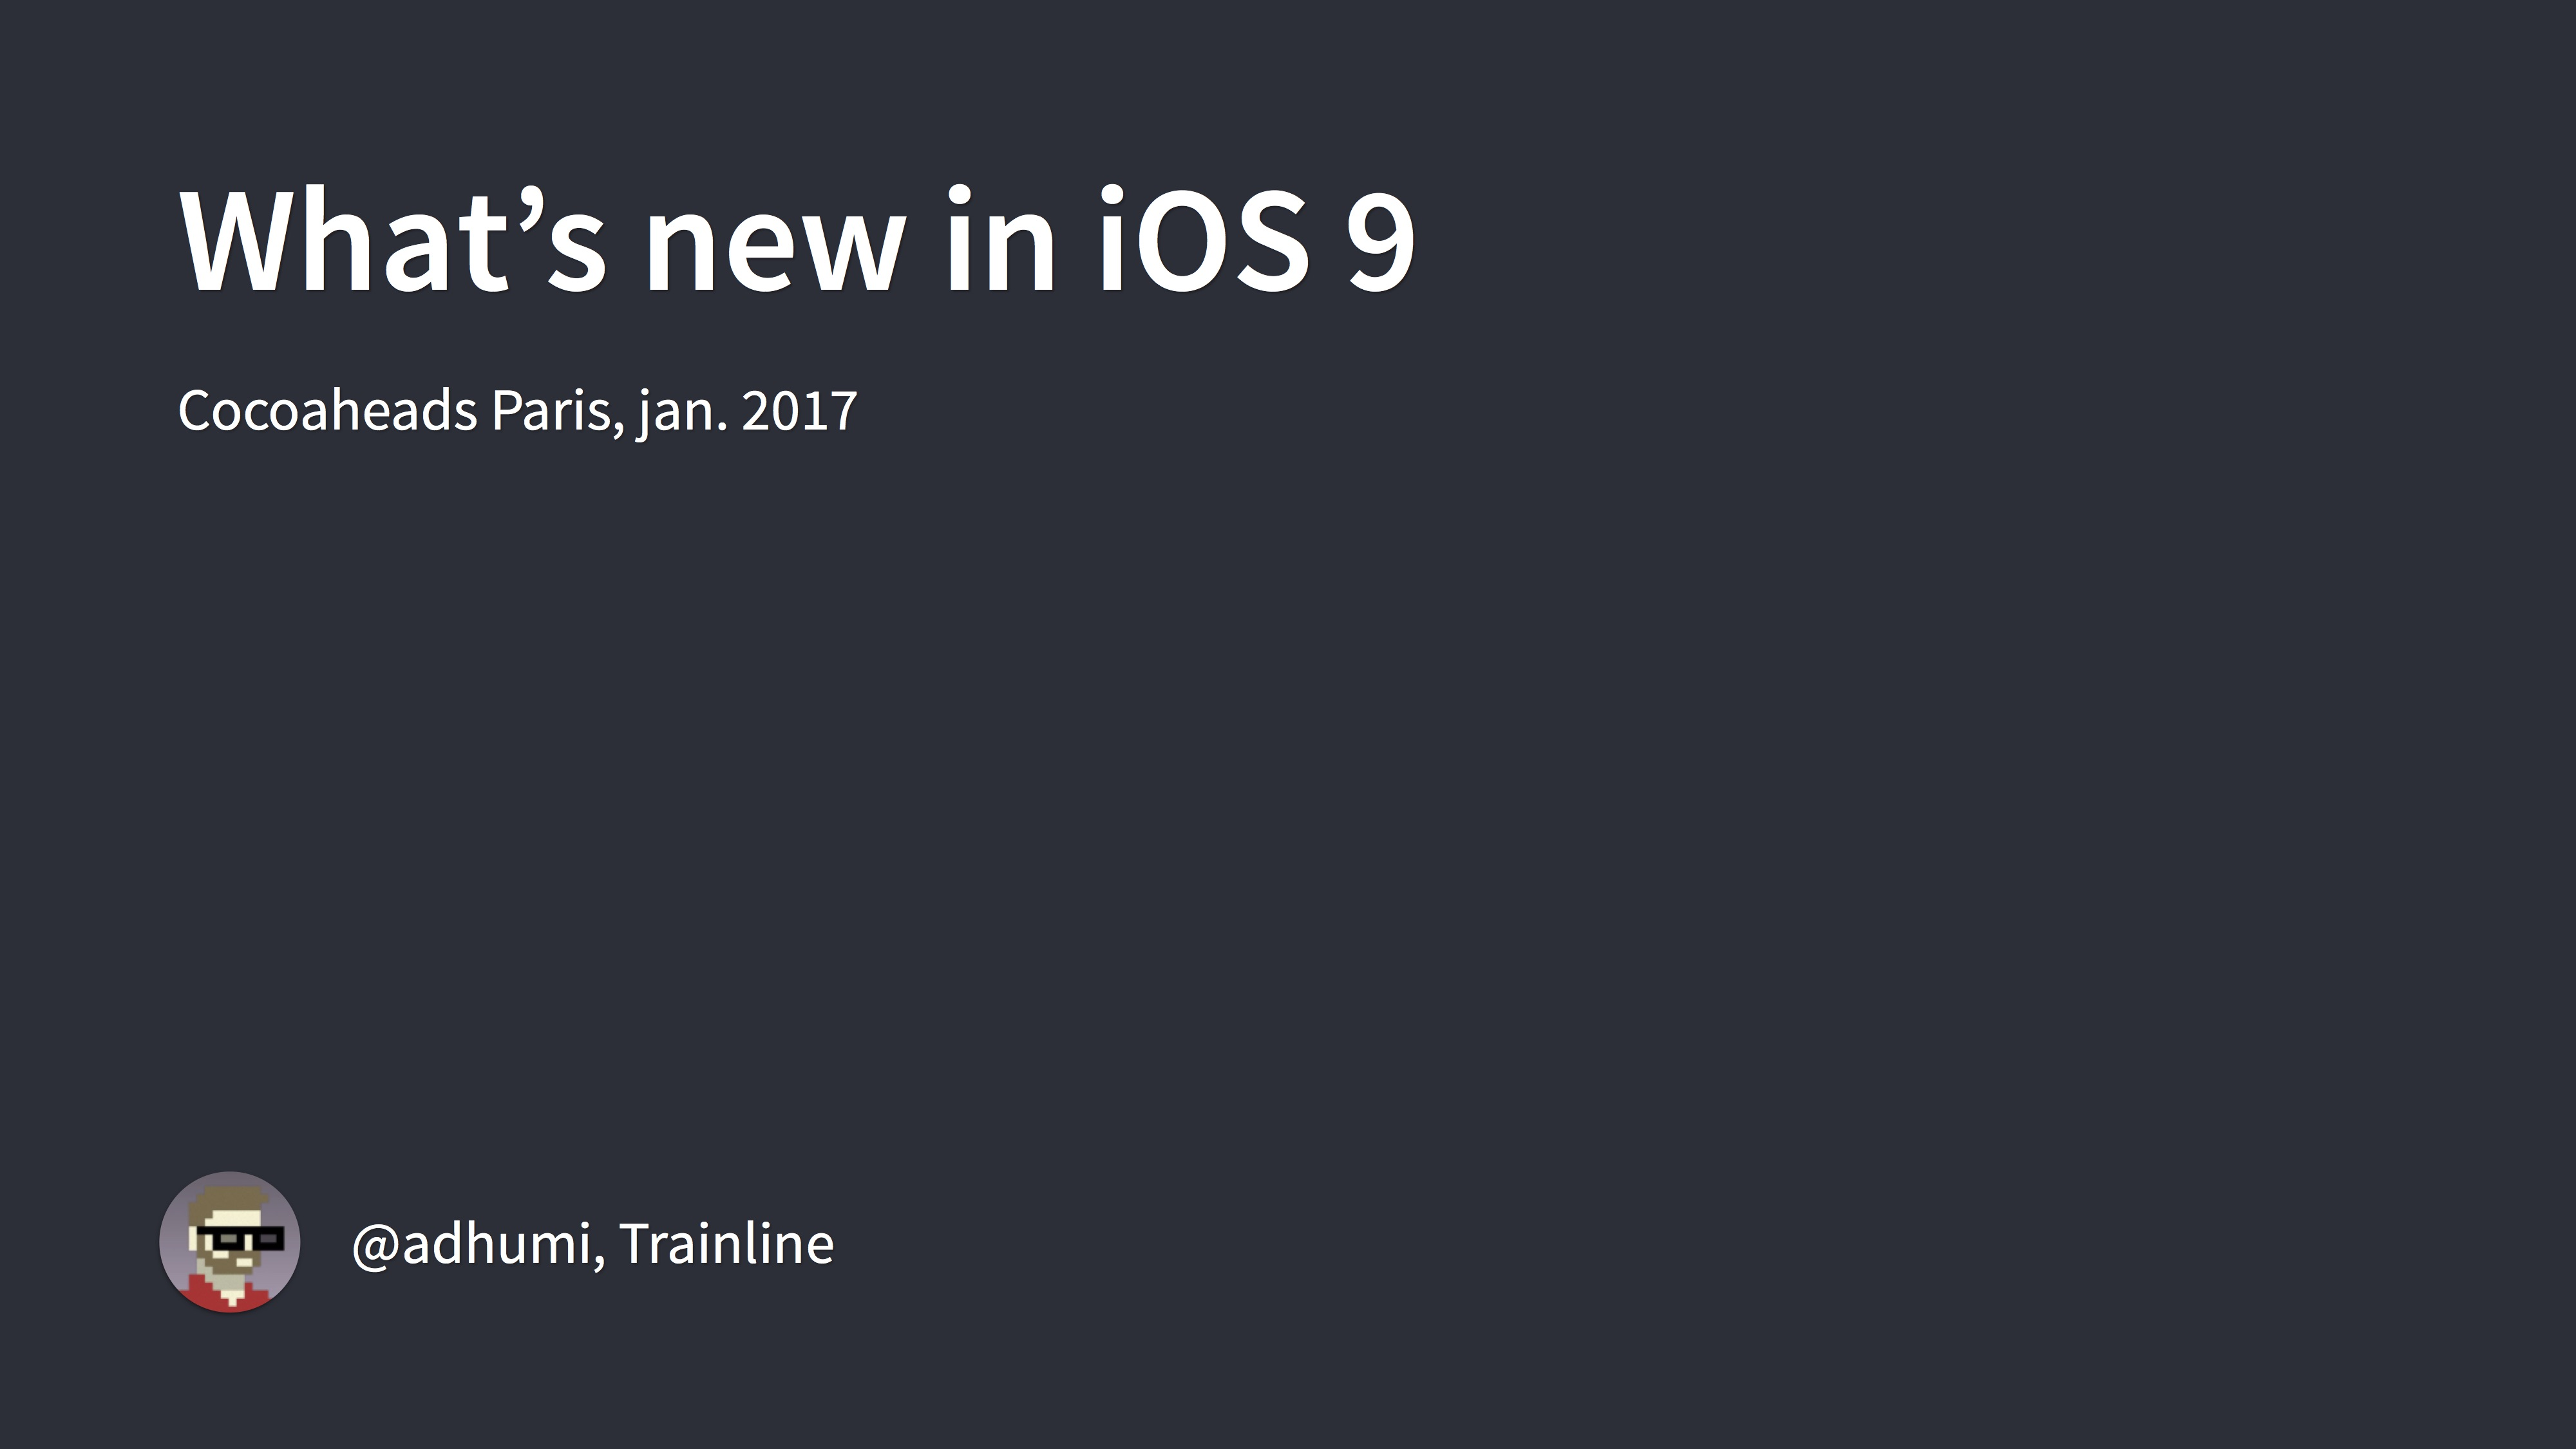 What's new in iOS 9